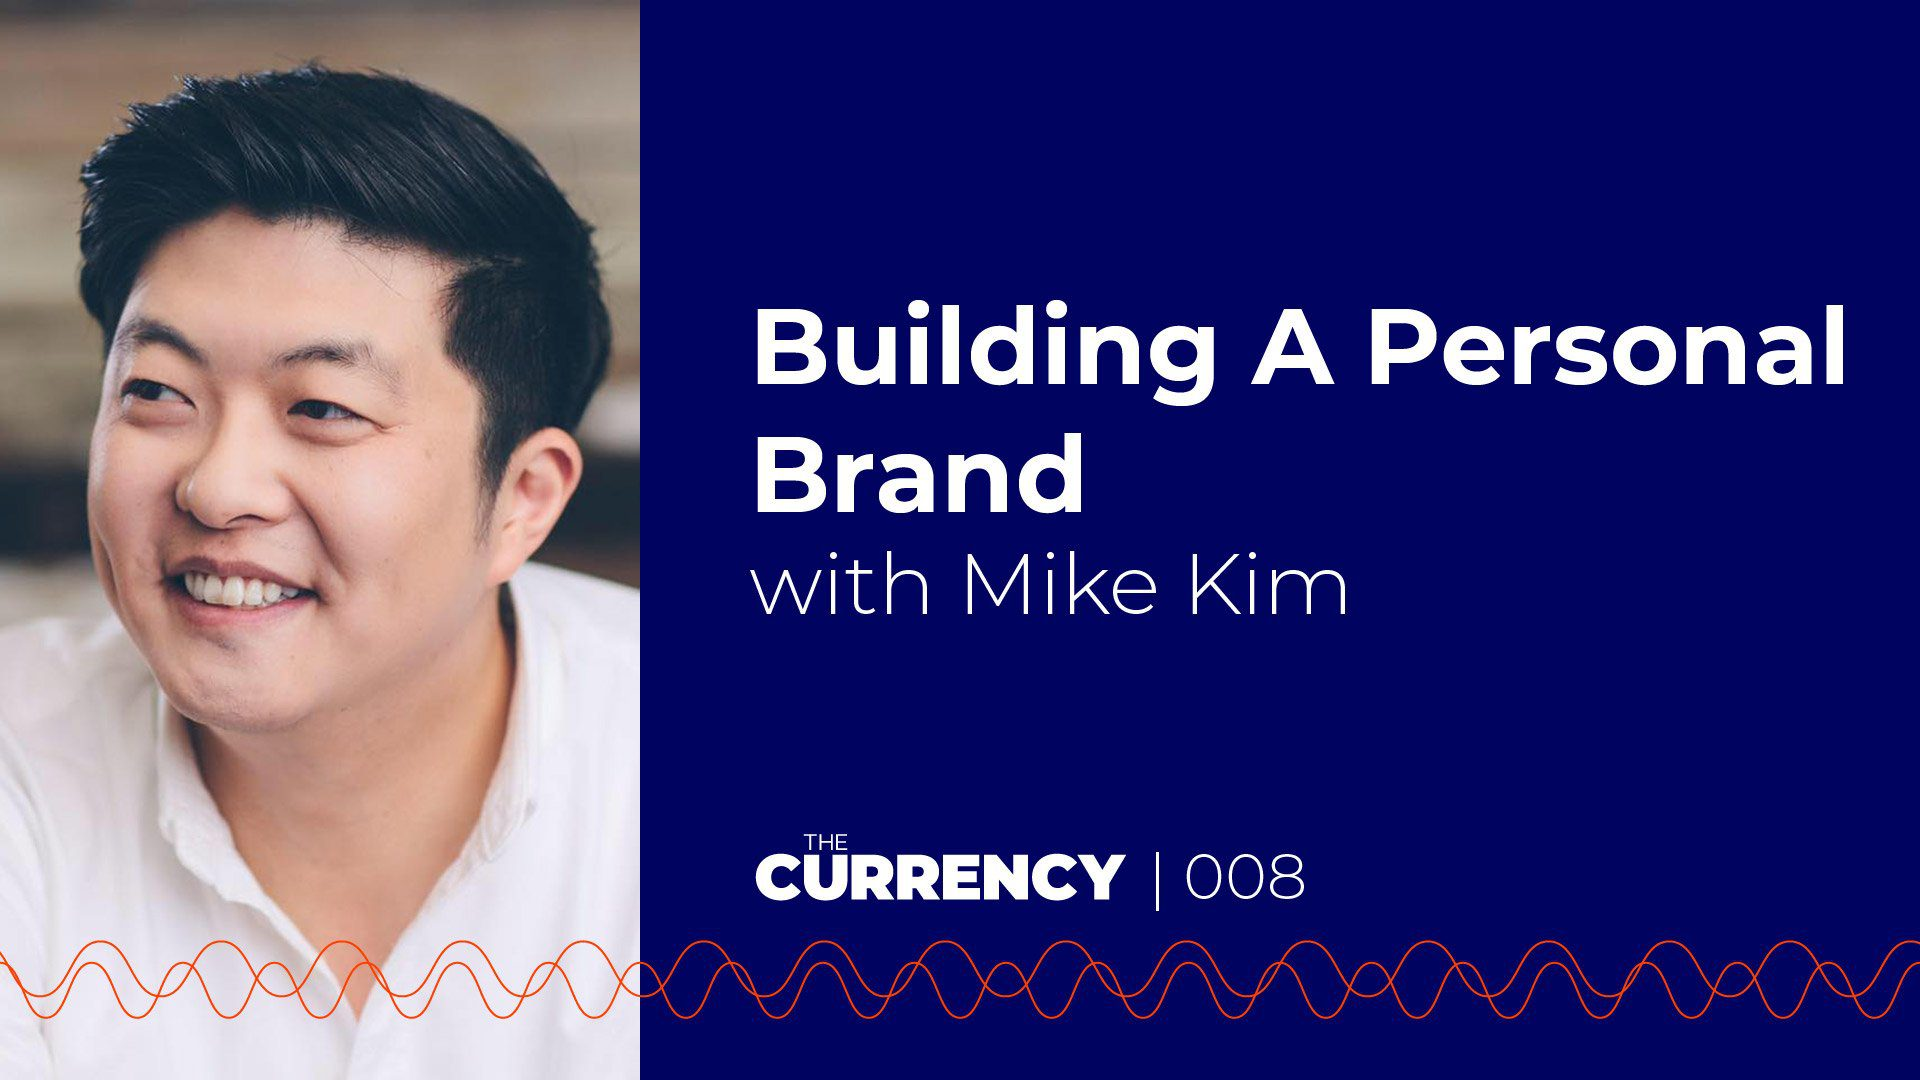 The Currency: [008] Building A Personal Brand with Mike Kim